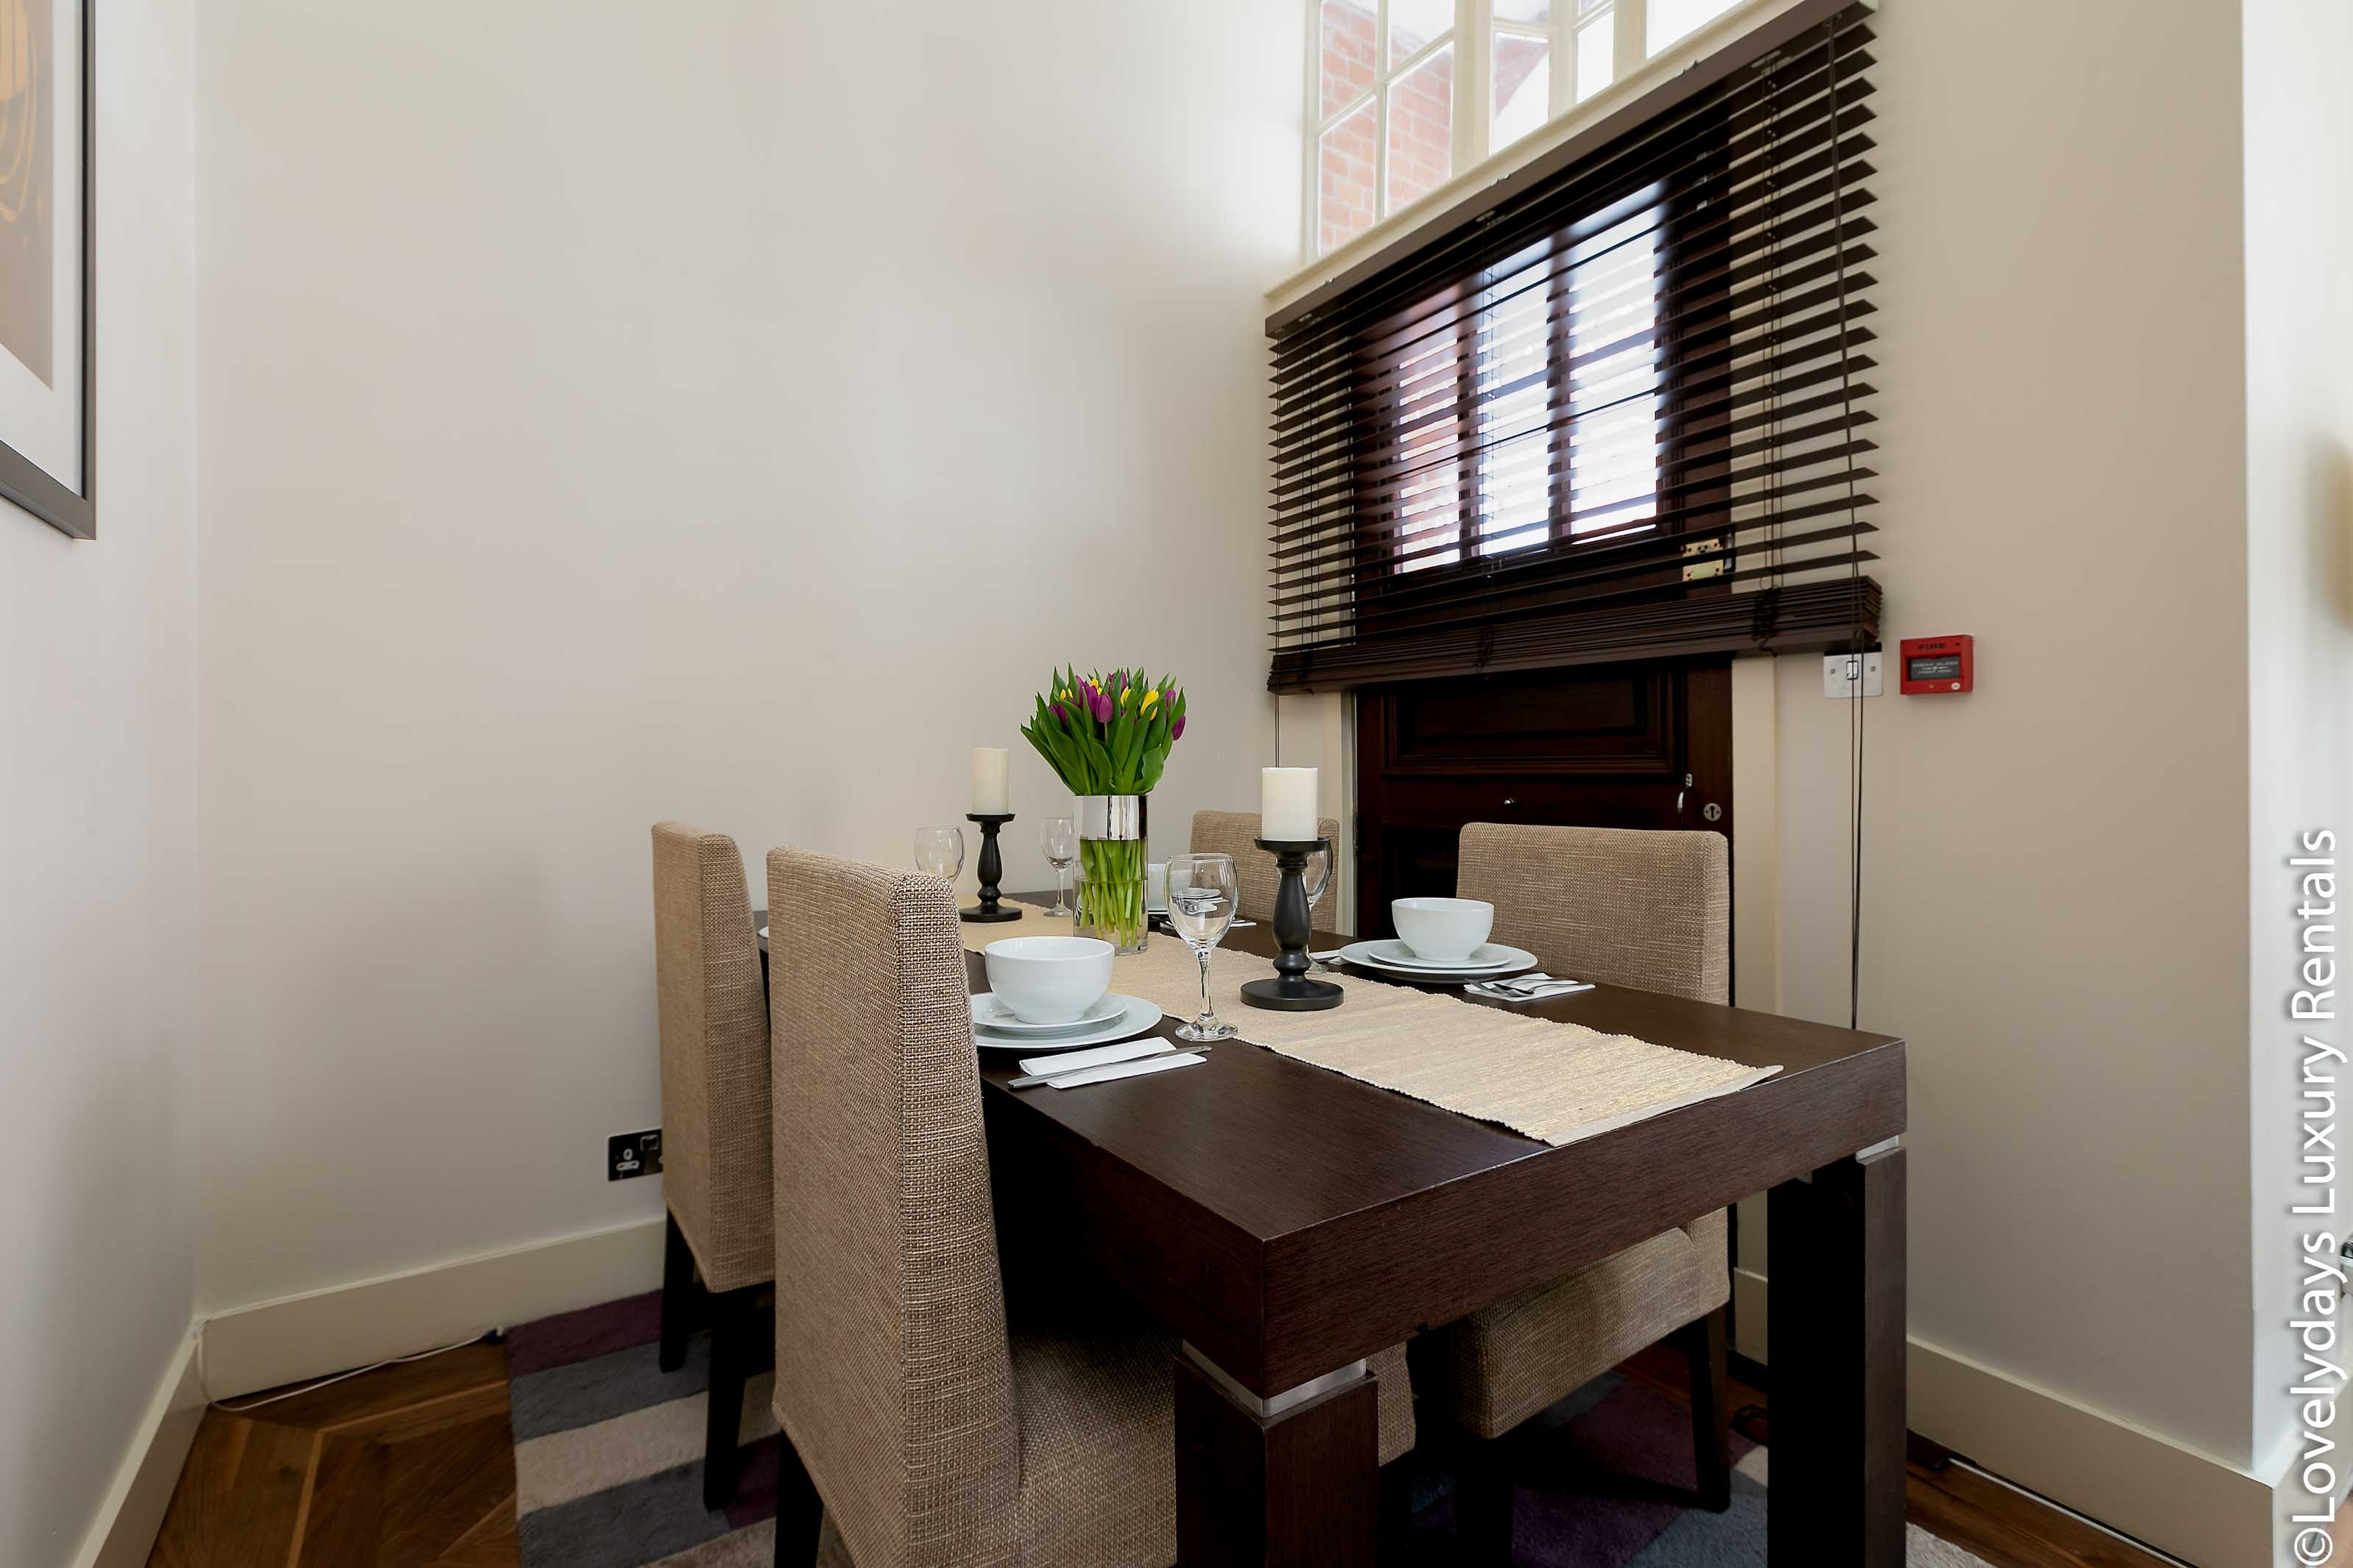 Lovelydays luxury service apartment rental - London - Knightsbridge - Hans Crescent - Partner - 2 bedrooms - 2 bathrooms - Dining living room - adc803ff4037 - Lovelydays